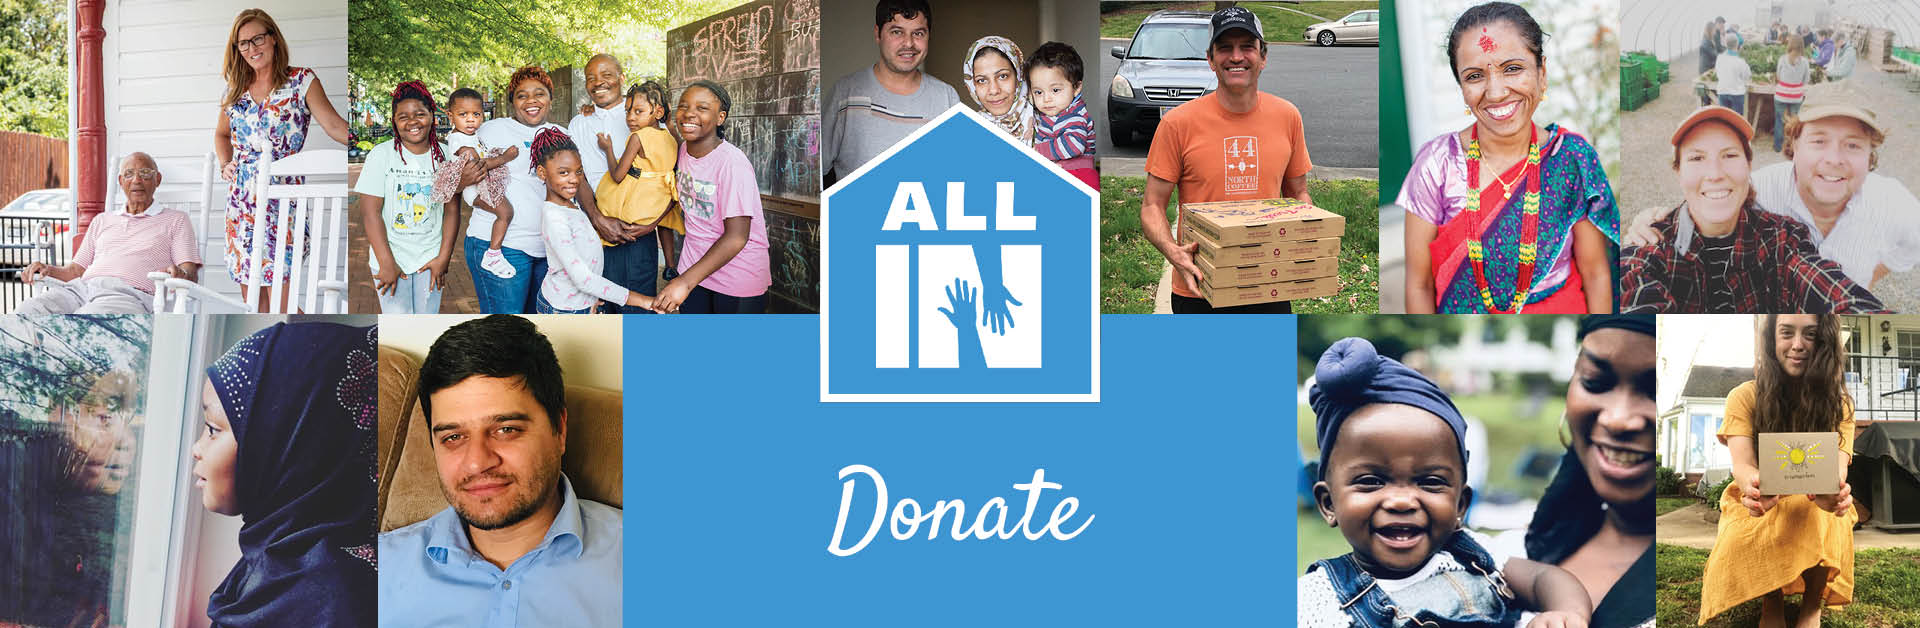 All In Hero Image_Donate